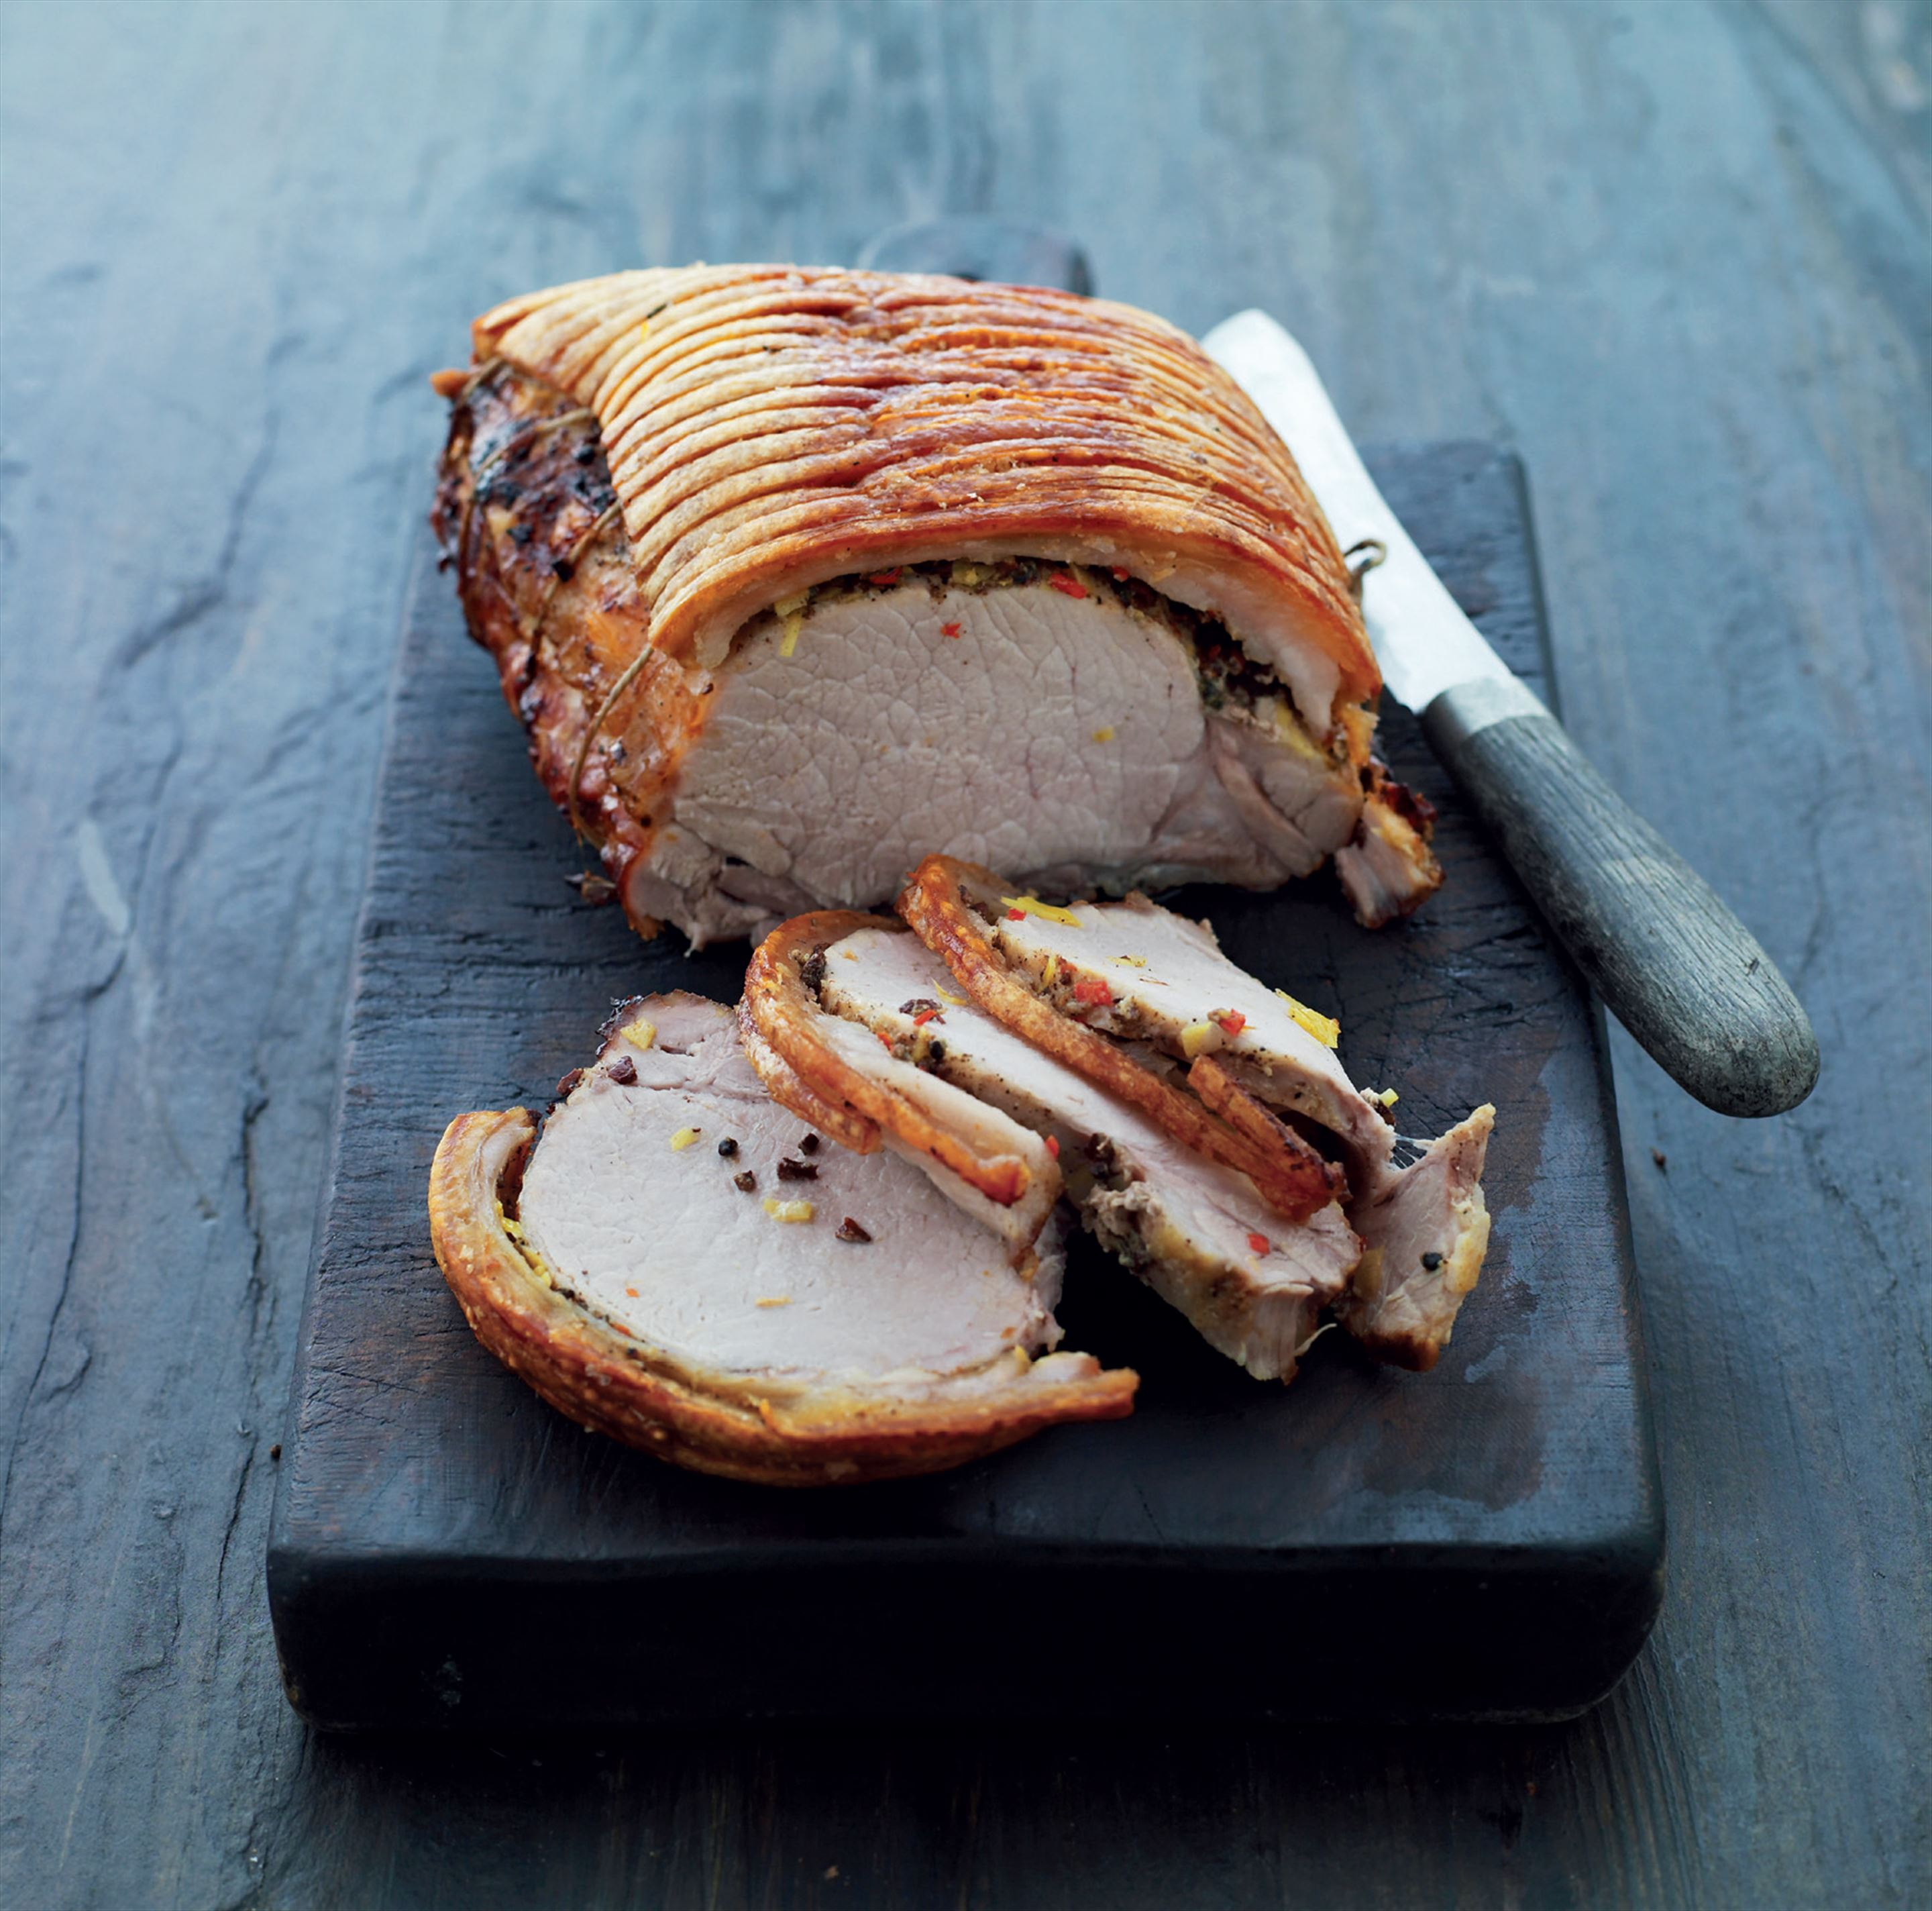 Roast pork with spices and crisp crackling